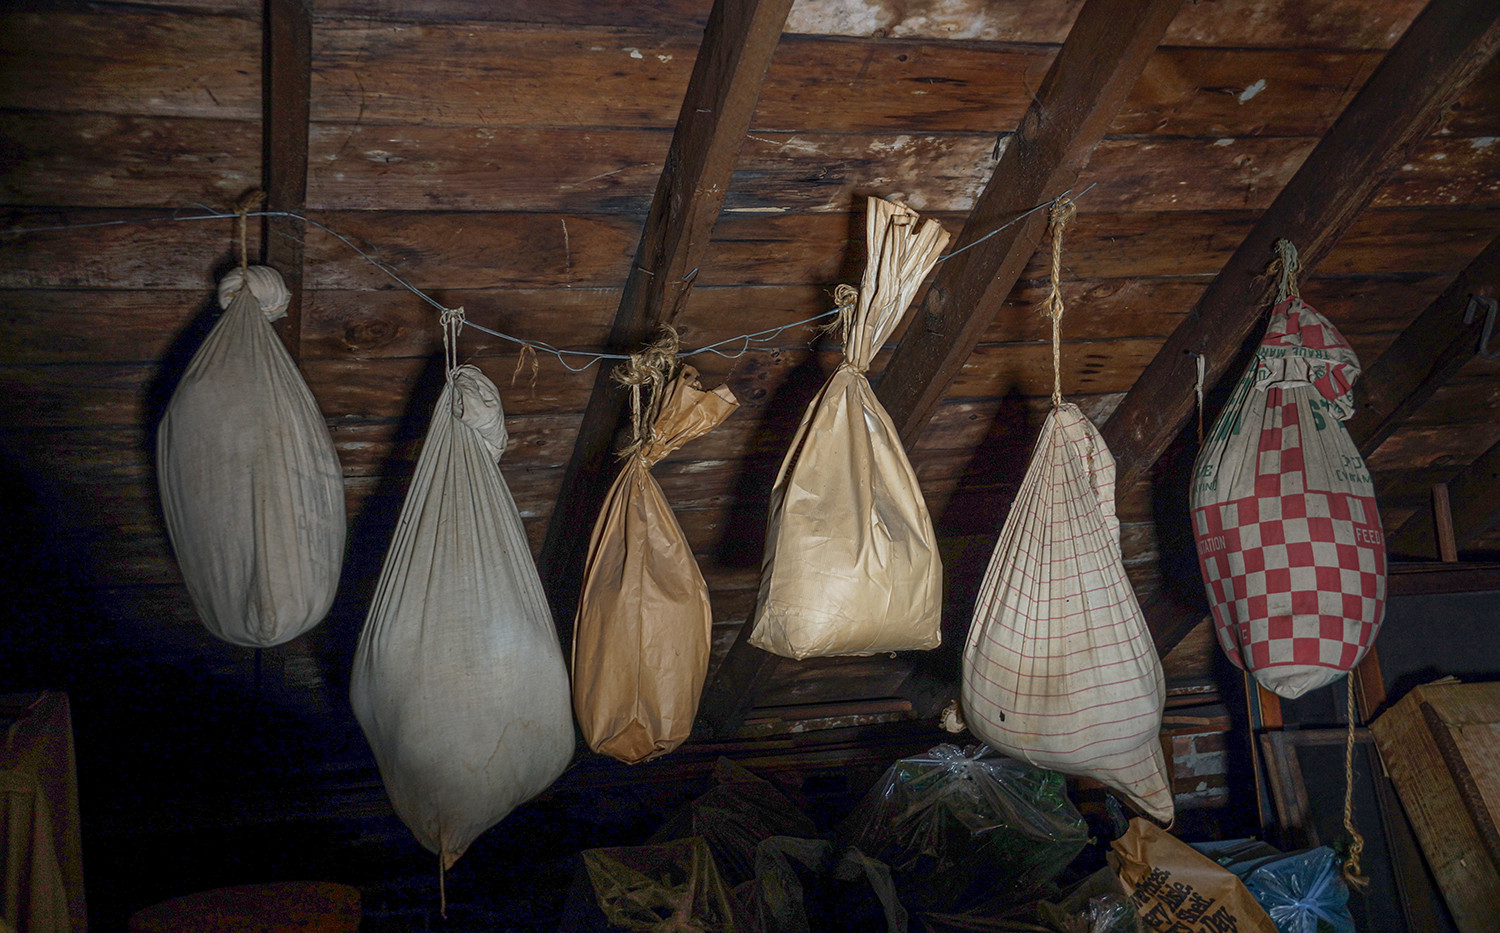 Mystery bags, House of Mysteries, Trotwood, Ohio